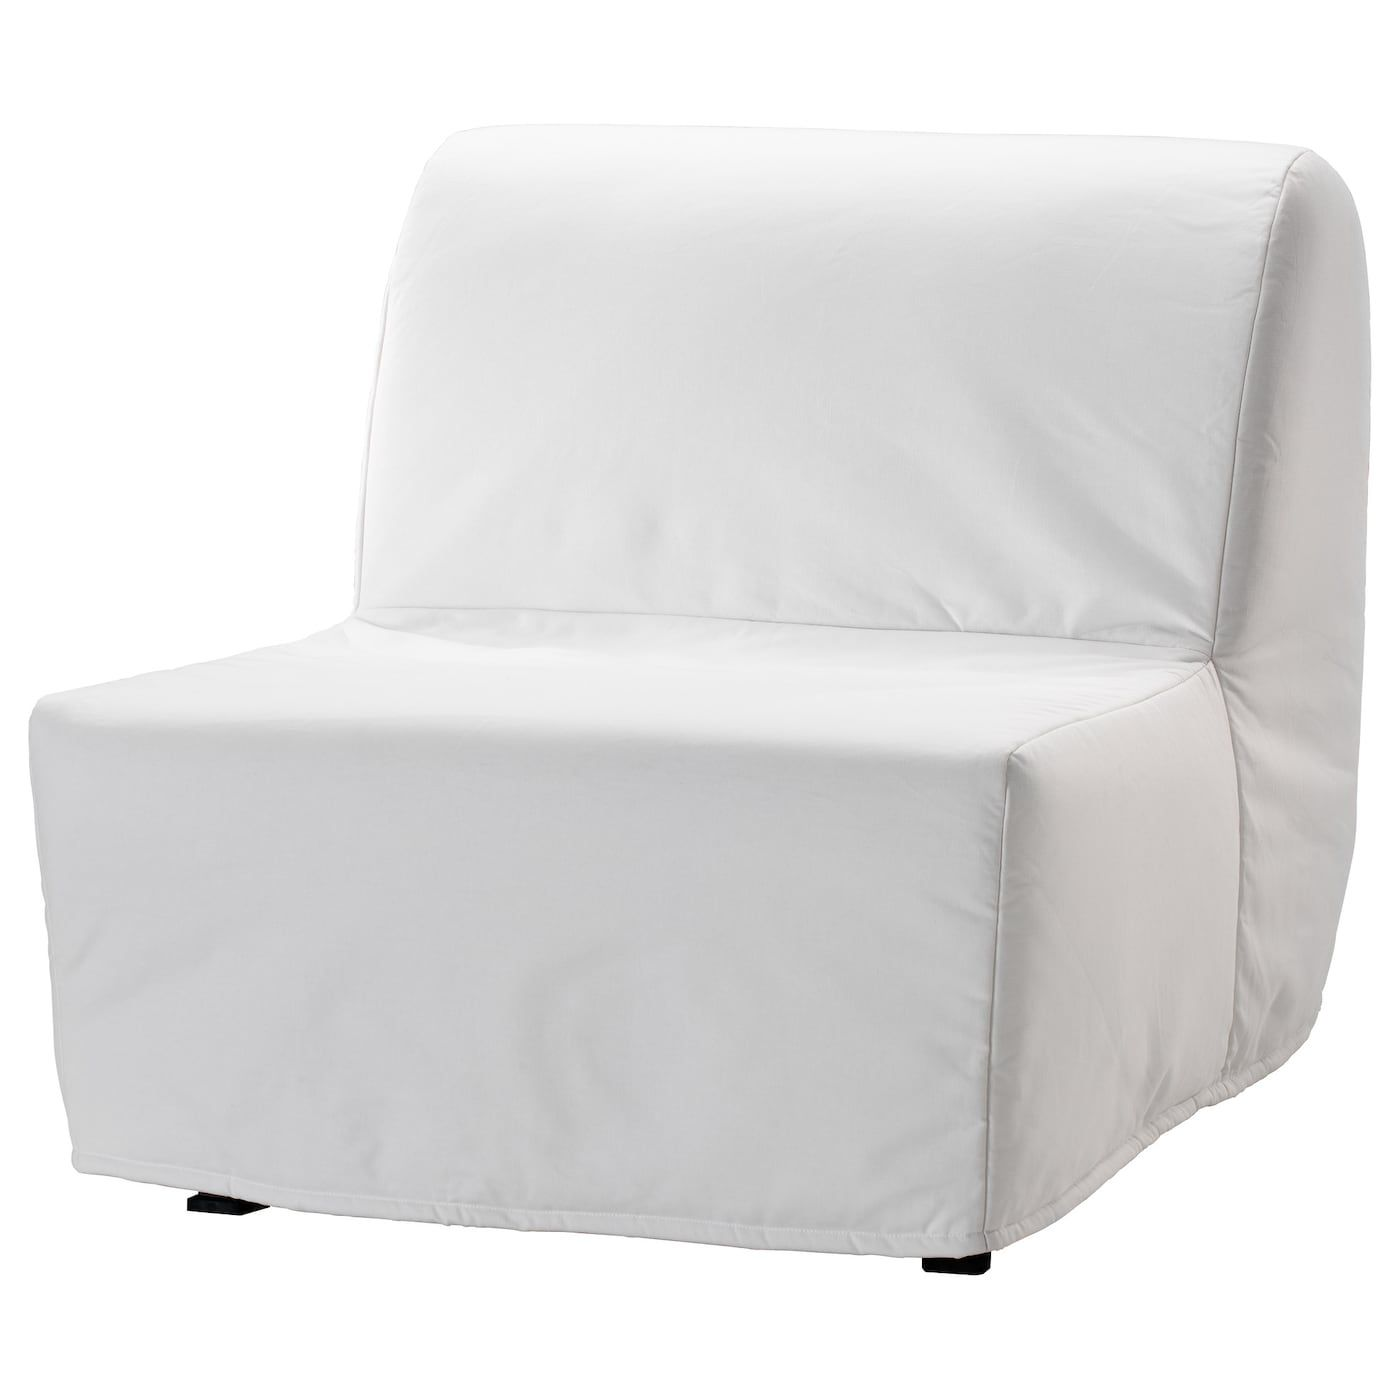 Lycksele Lovas Chair Bed Ransta White Ikea Sofa Bed Chair Bed